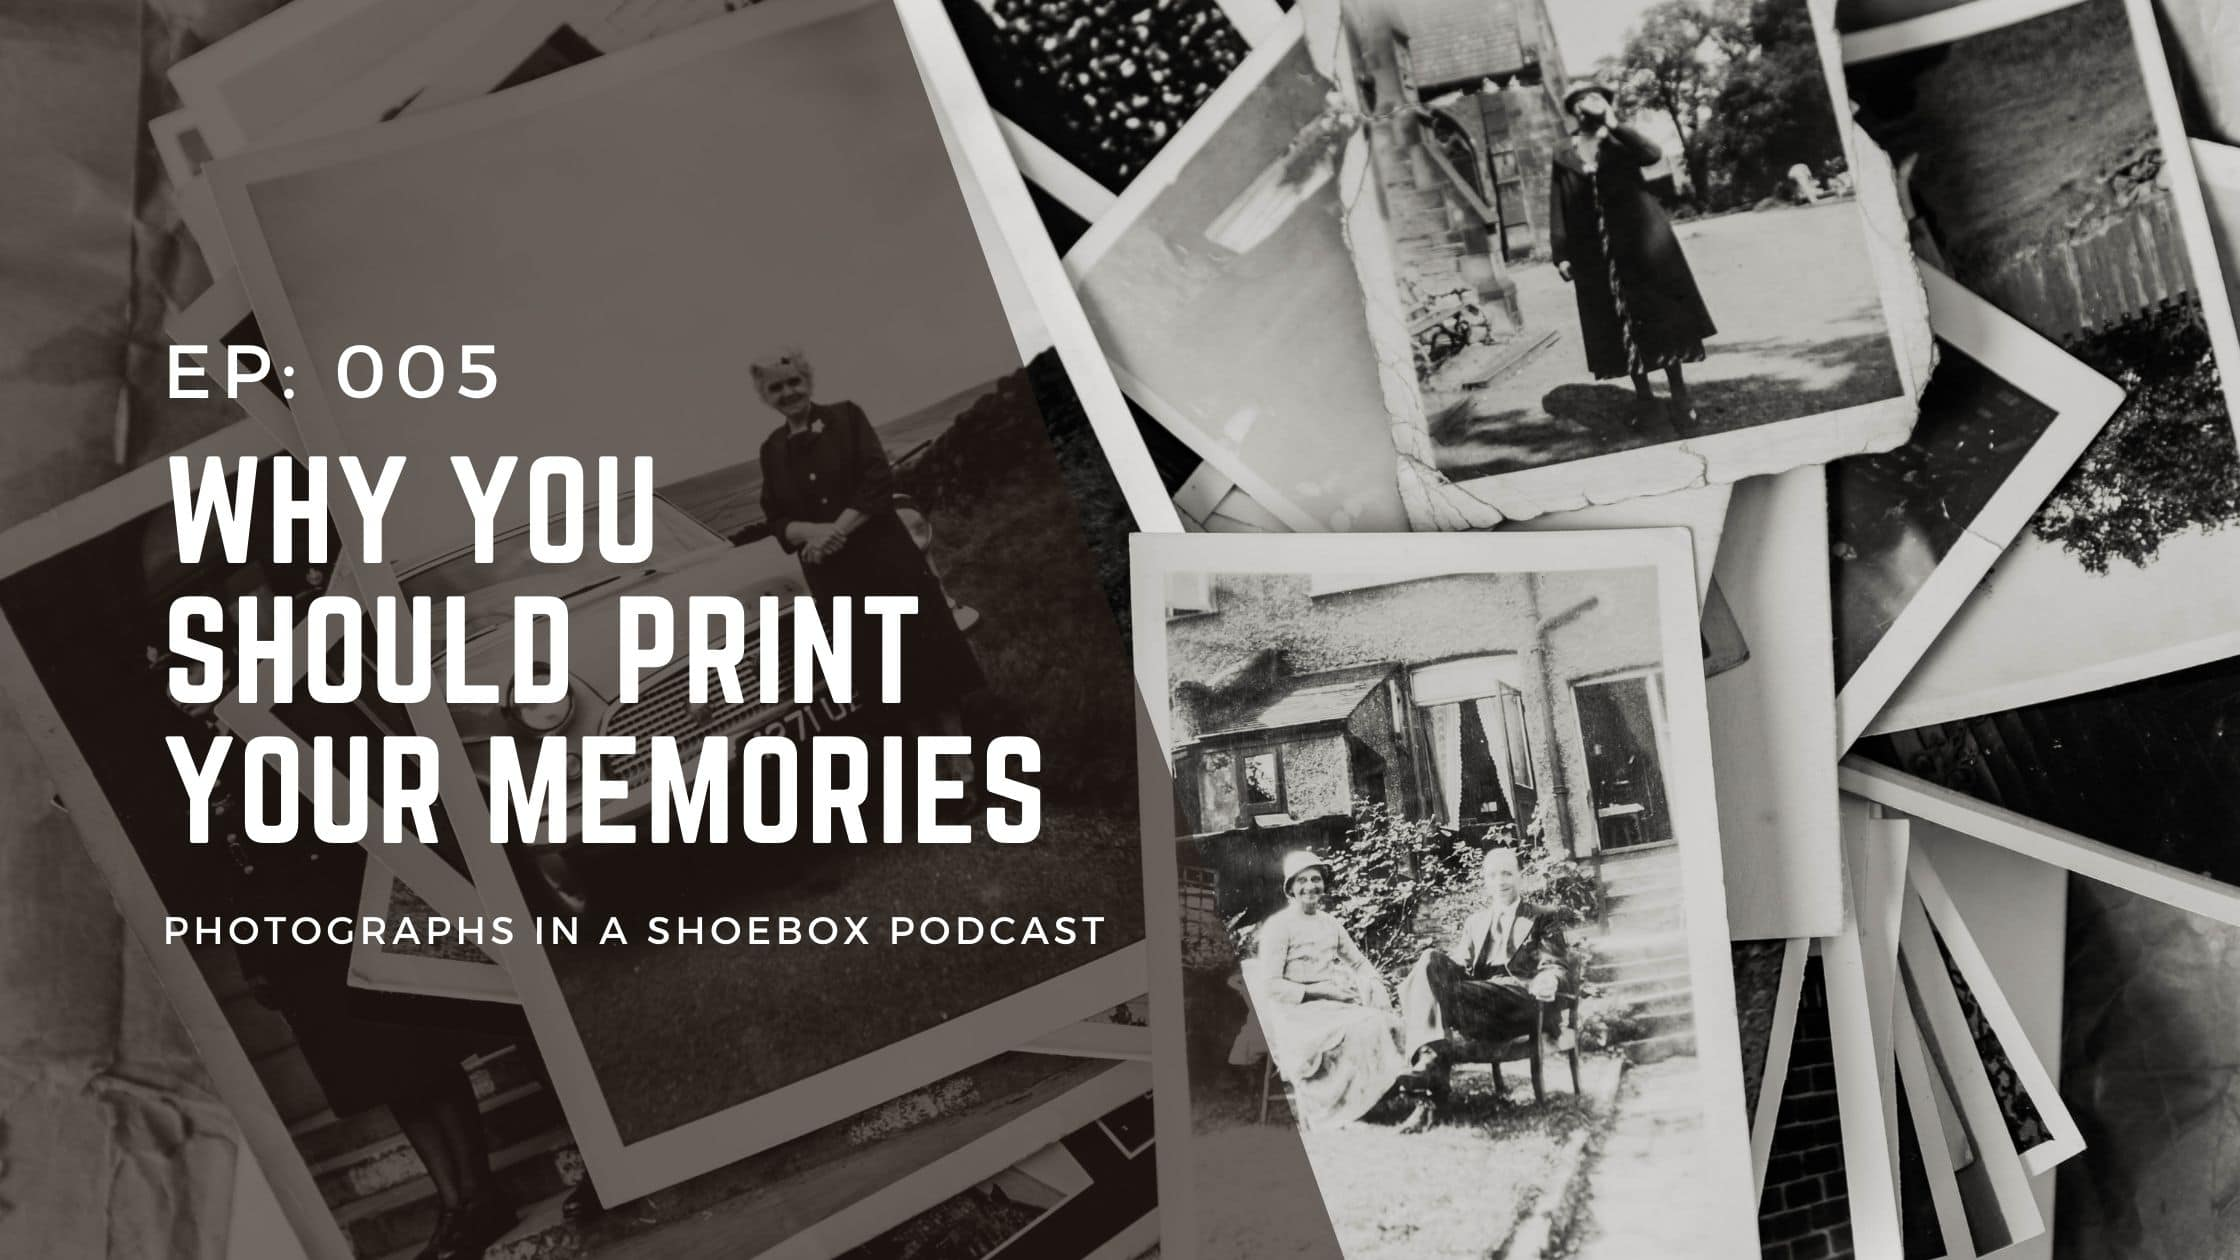 artwork for photographs in a shoebox podcast episode 5